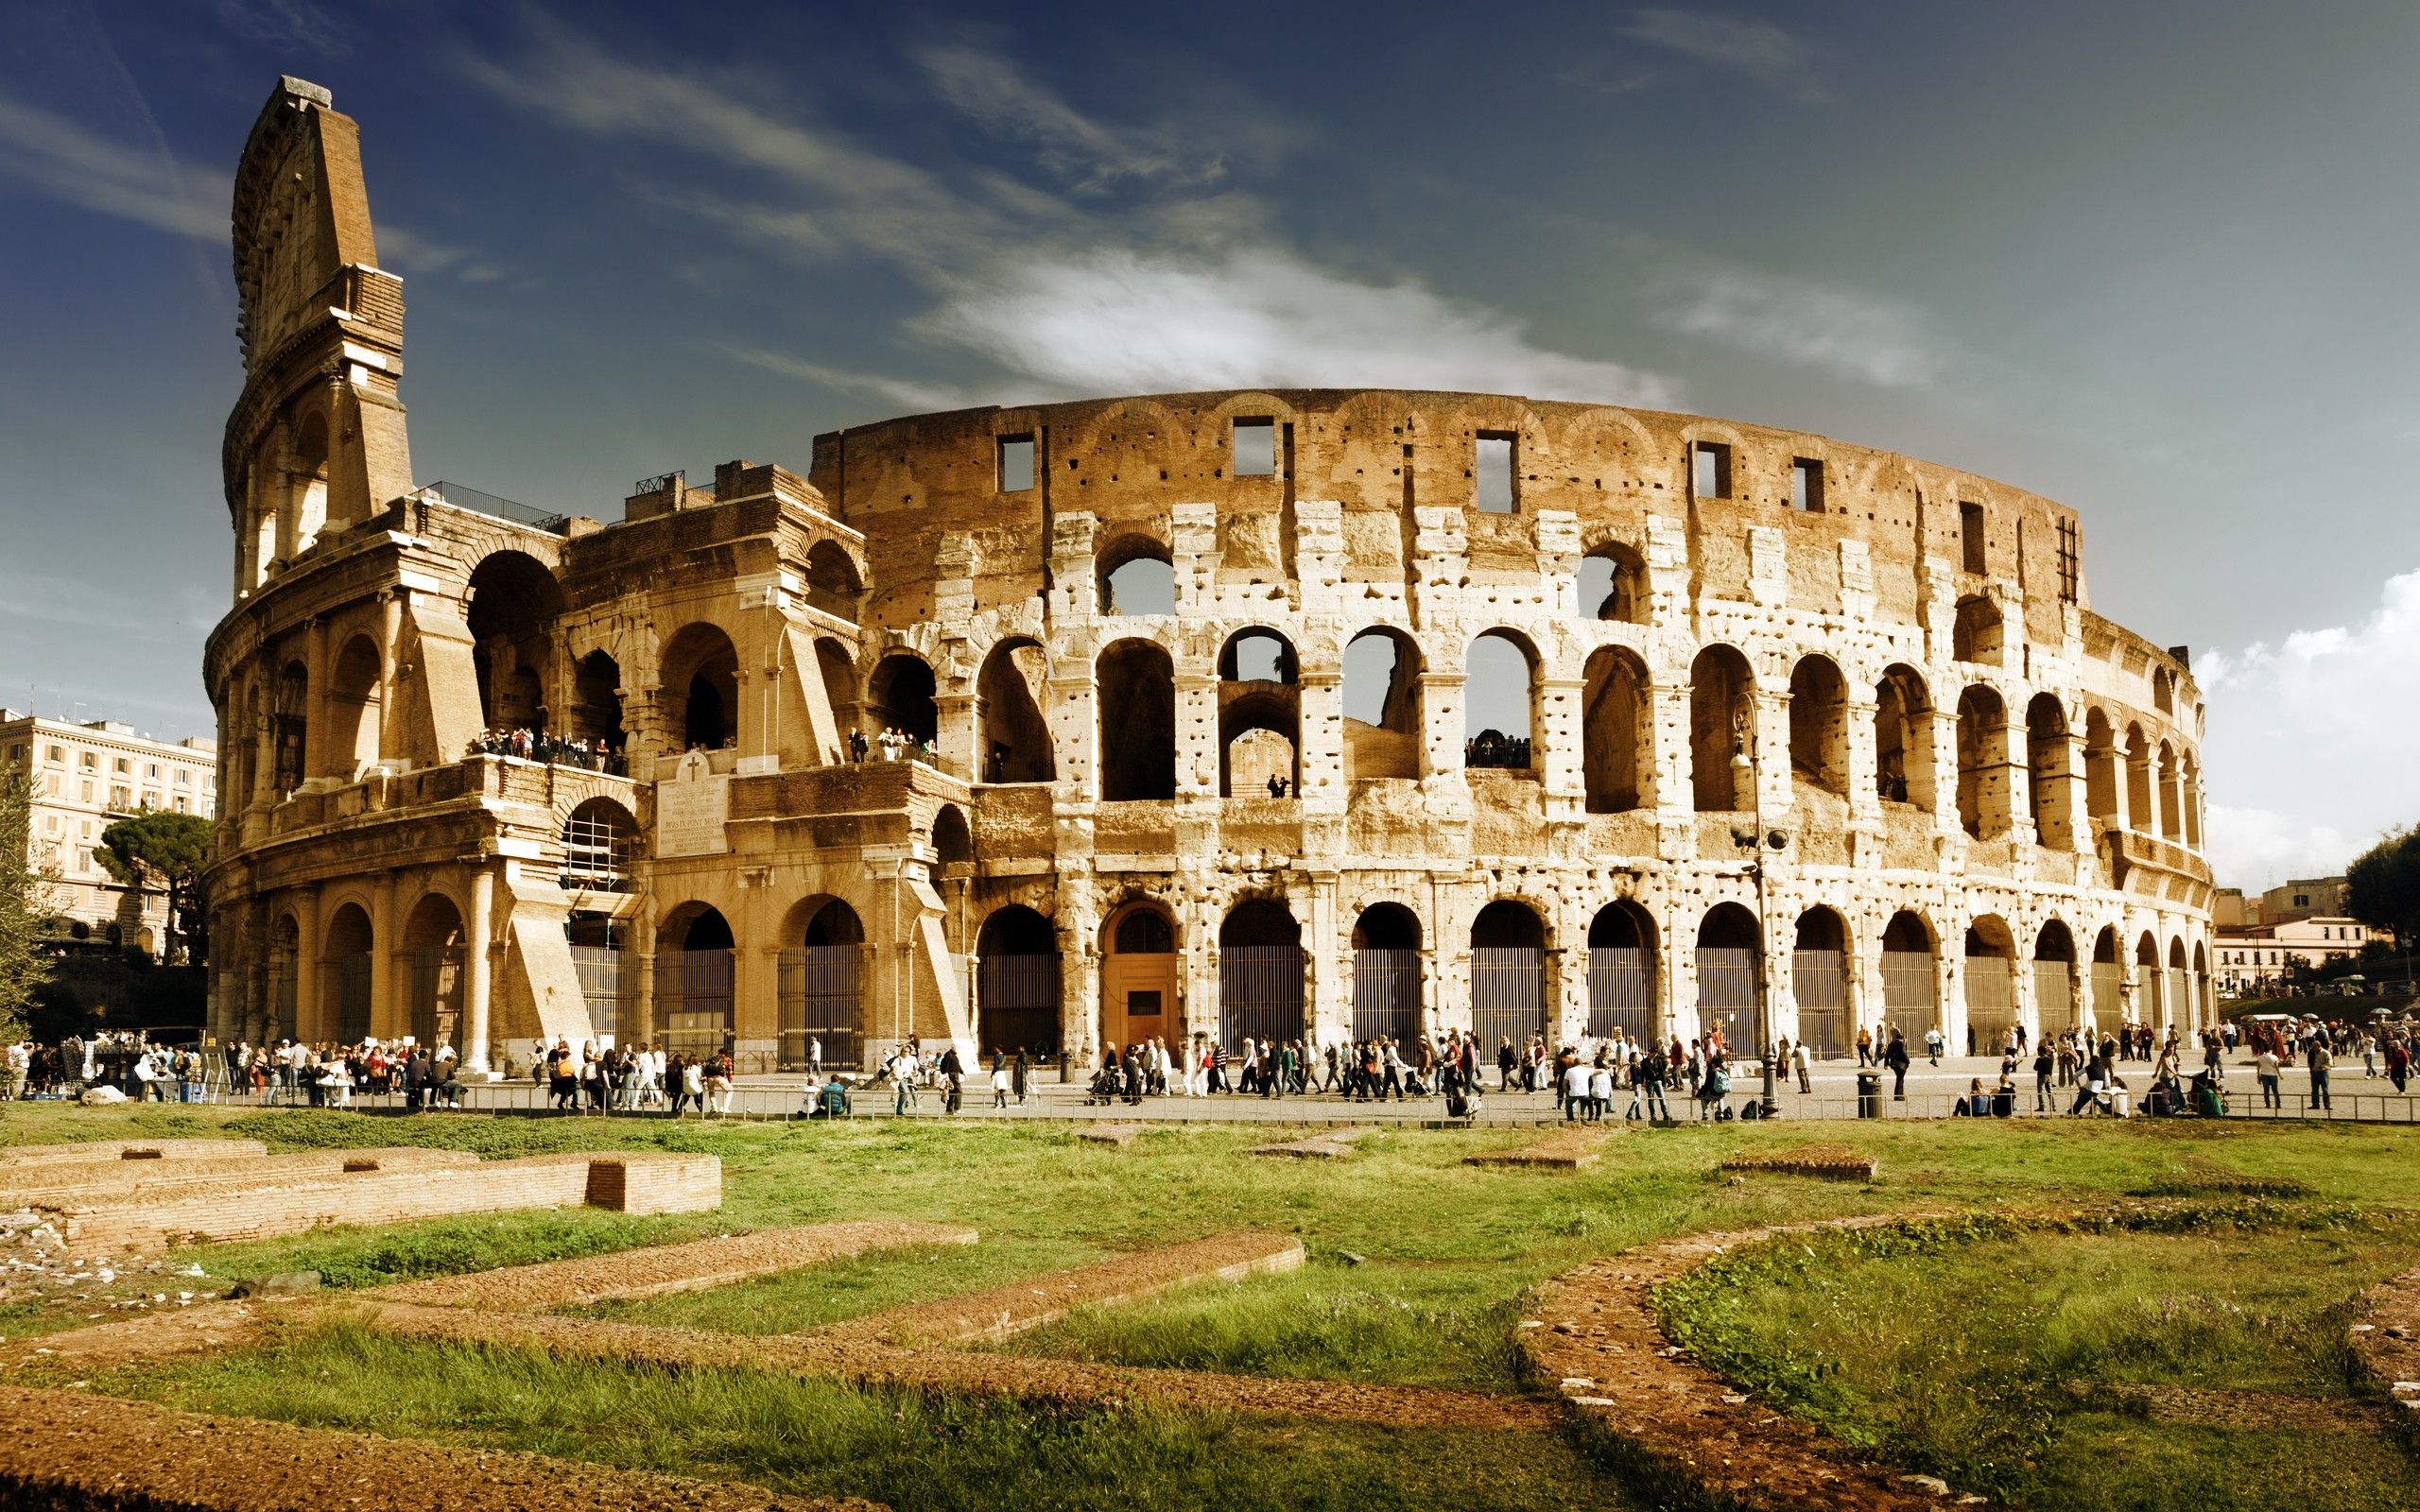 sunset clouds architecture grass people buildings Rome Colosseum arena skies  / 2560x1600 Wallpaper